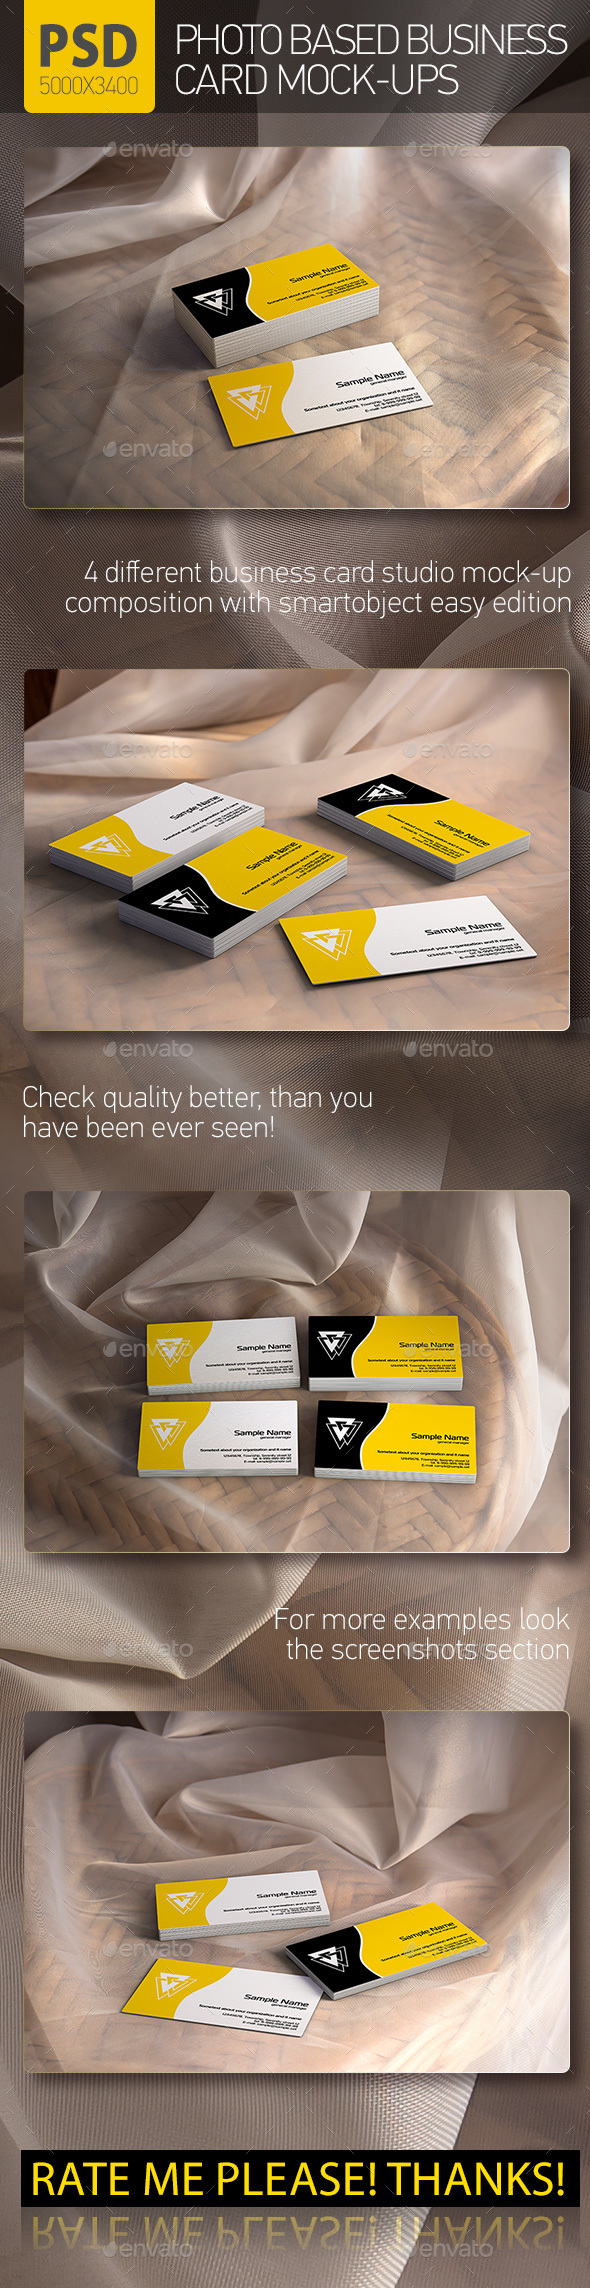 Business card vcard mock up by bennet1890 graphicriver business card vcard mock up business cards print colourmoves